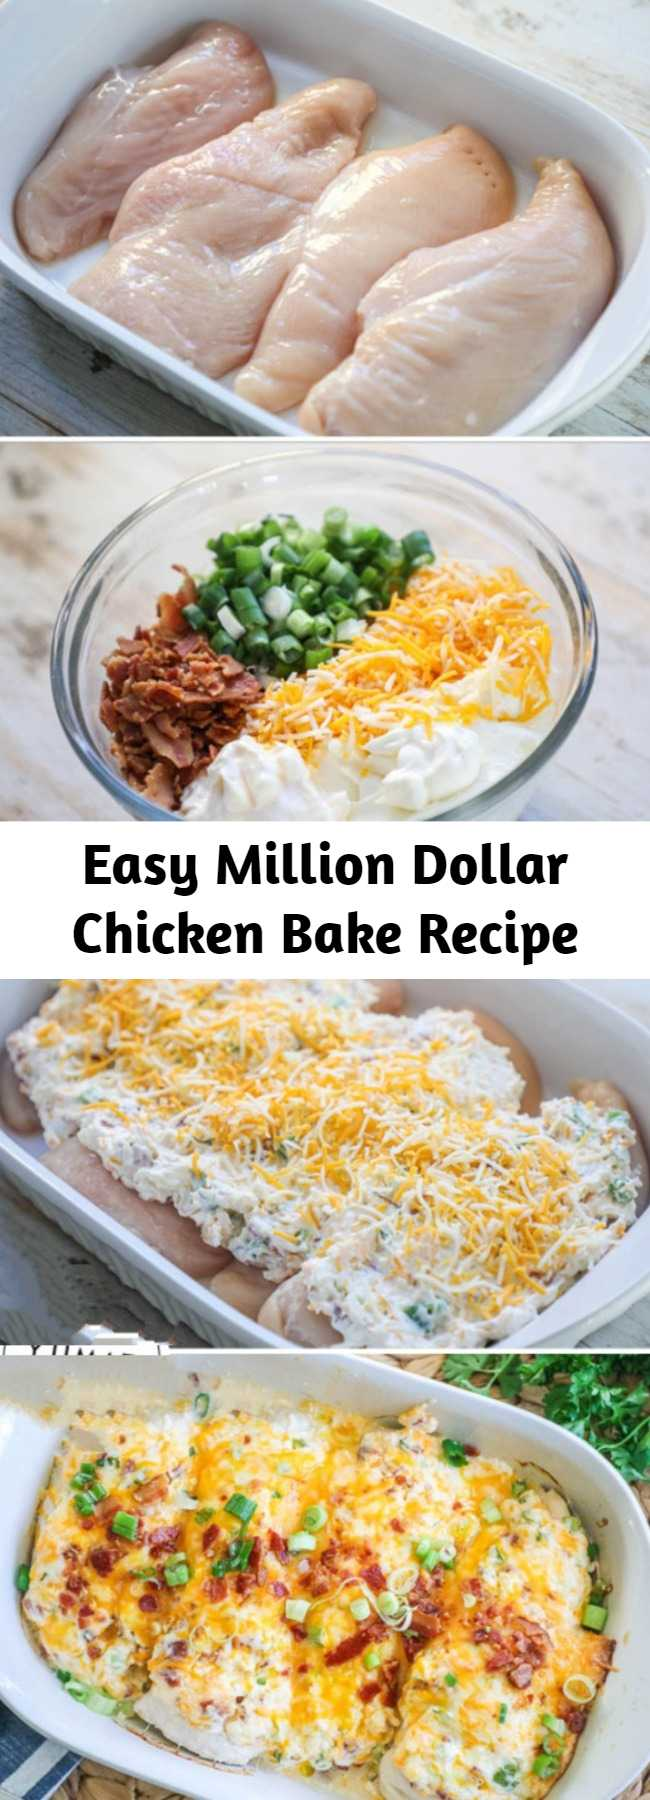 Easy Million Dollar Chicken Bake Recipe - This Million Dollar Chicken makes baked chicken breast exciting again! Packed with rich, bold flavors, this one dish meal is a family favorite!